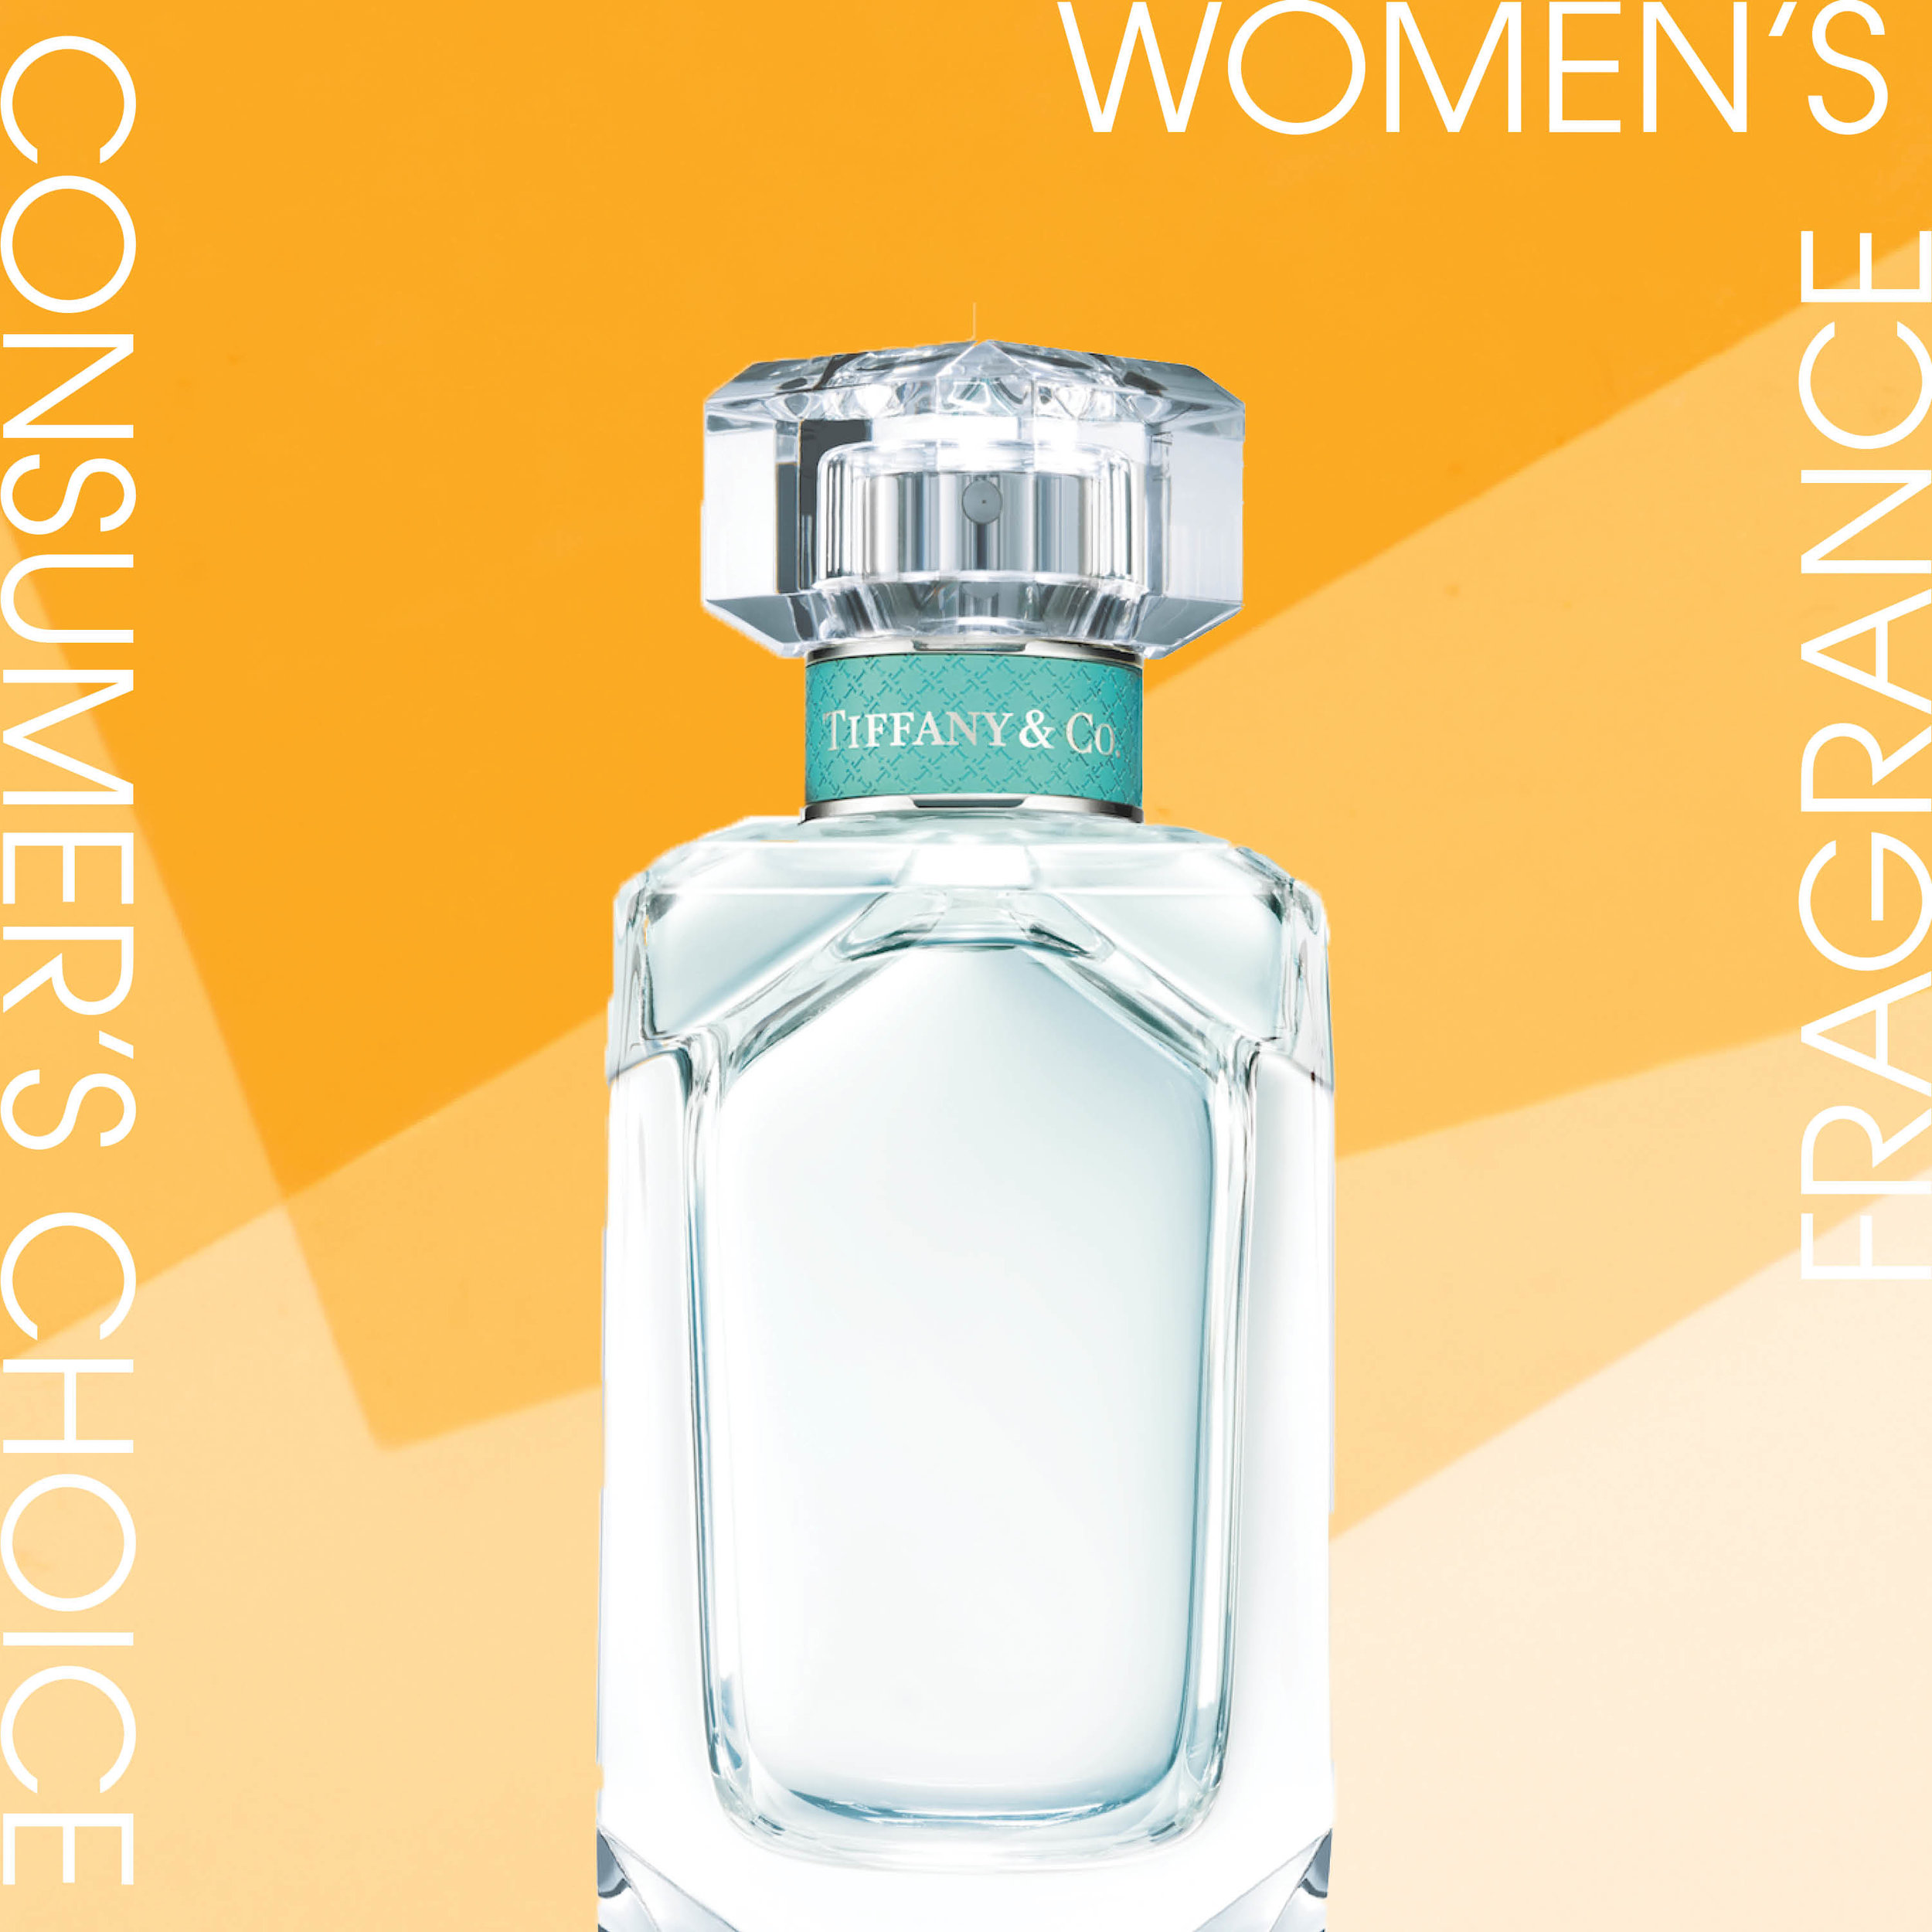 Consumers' Choice - Women's Fragrance